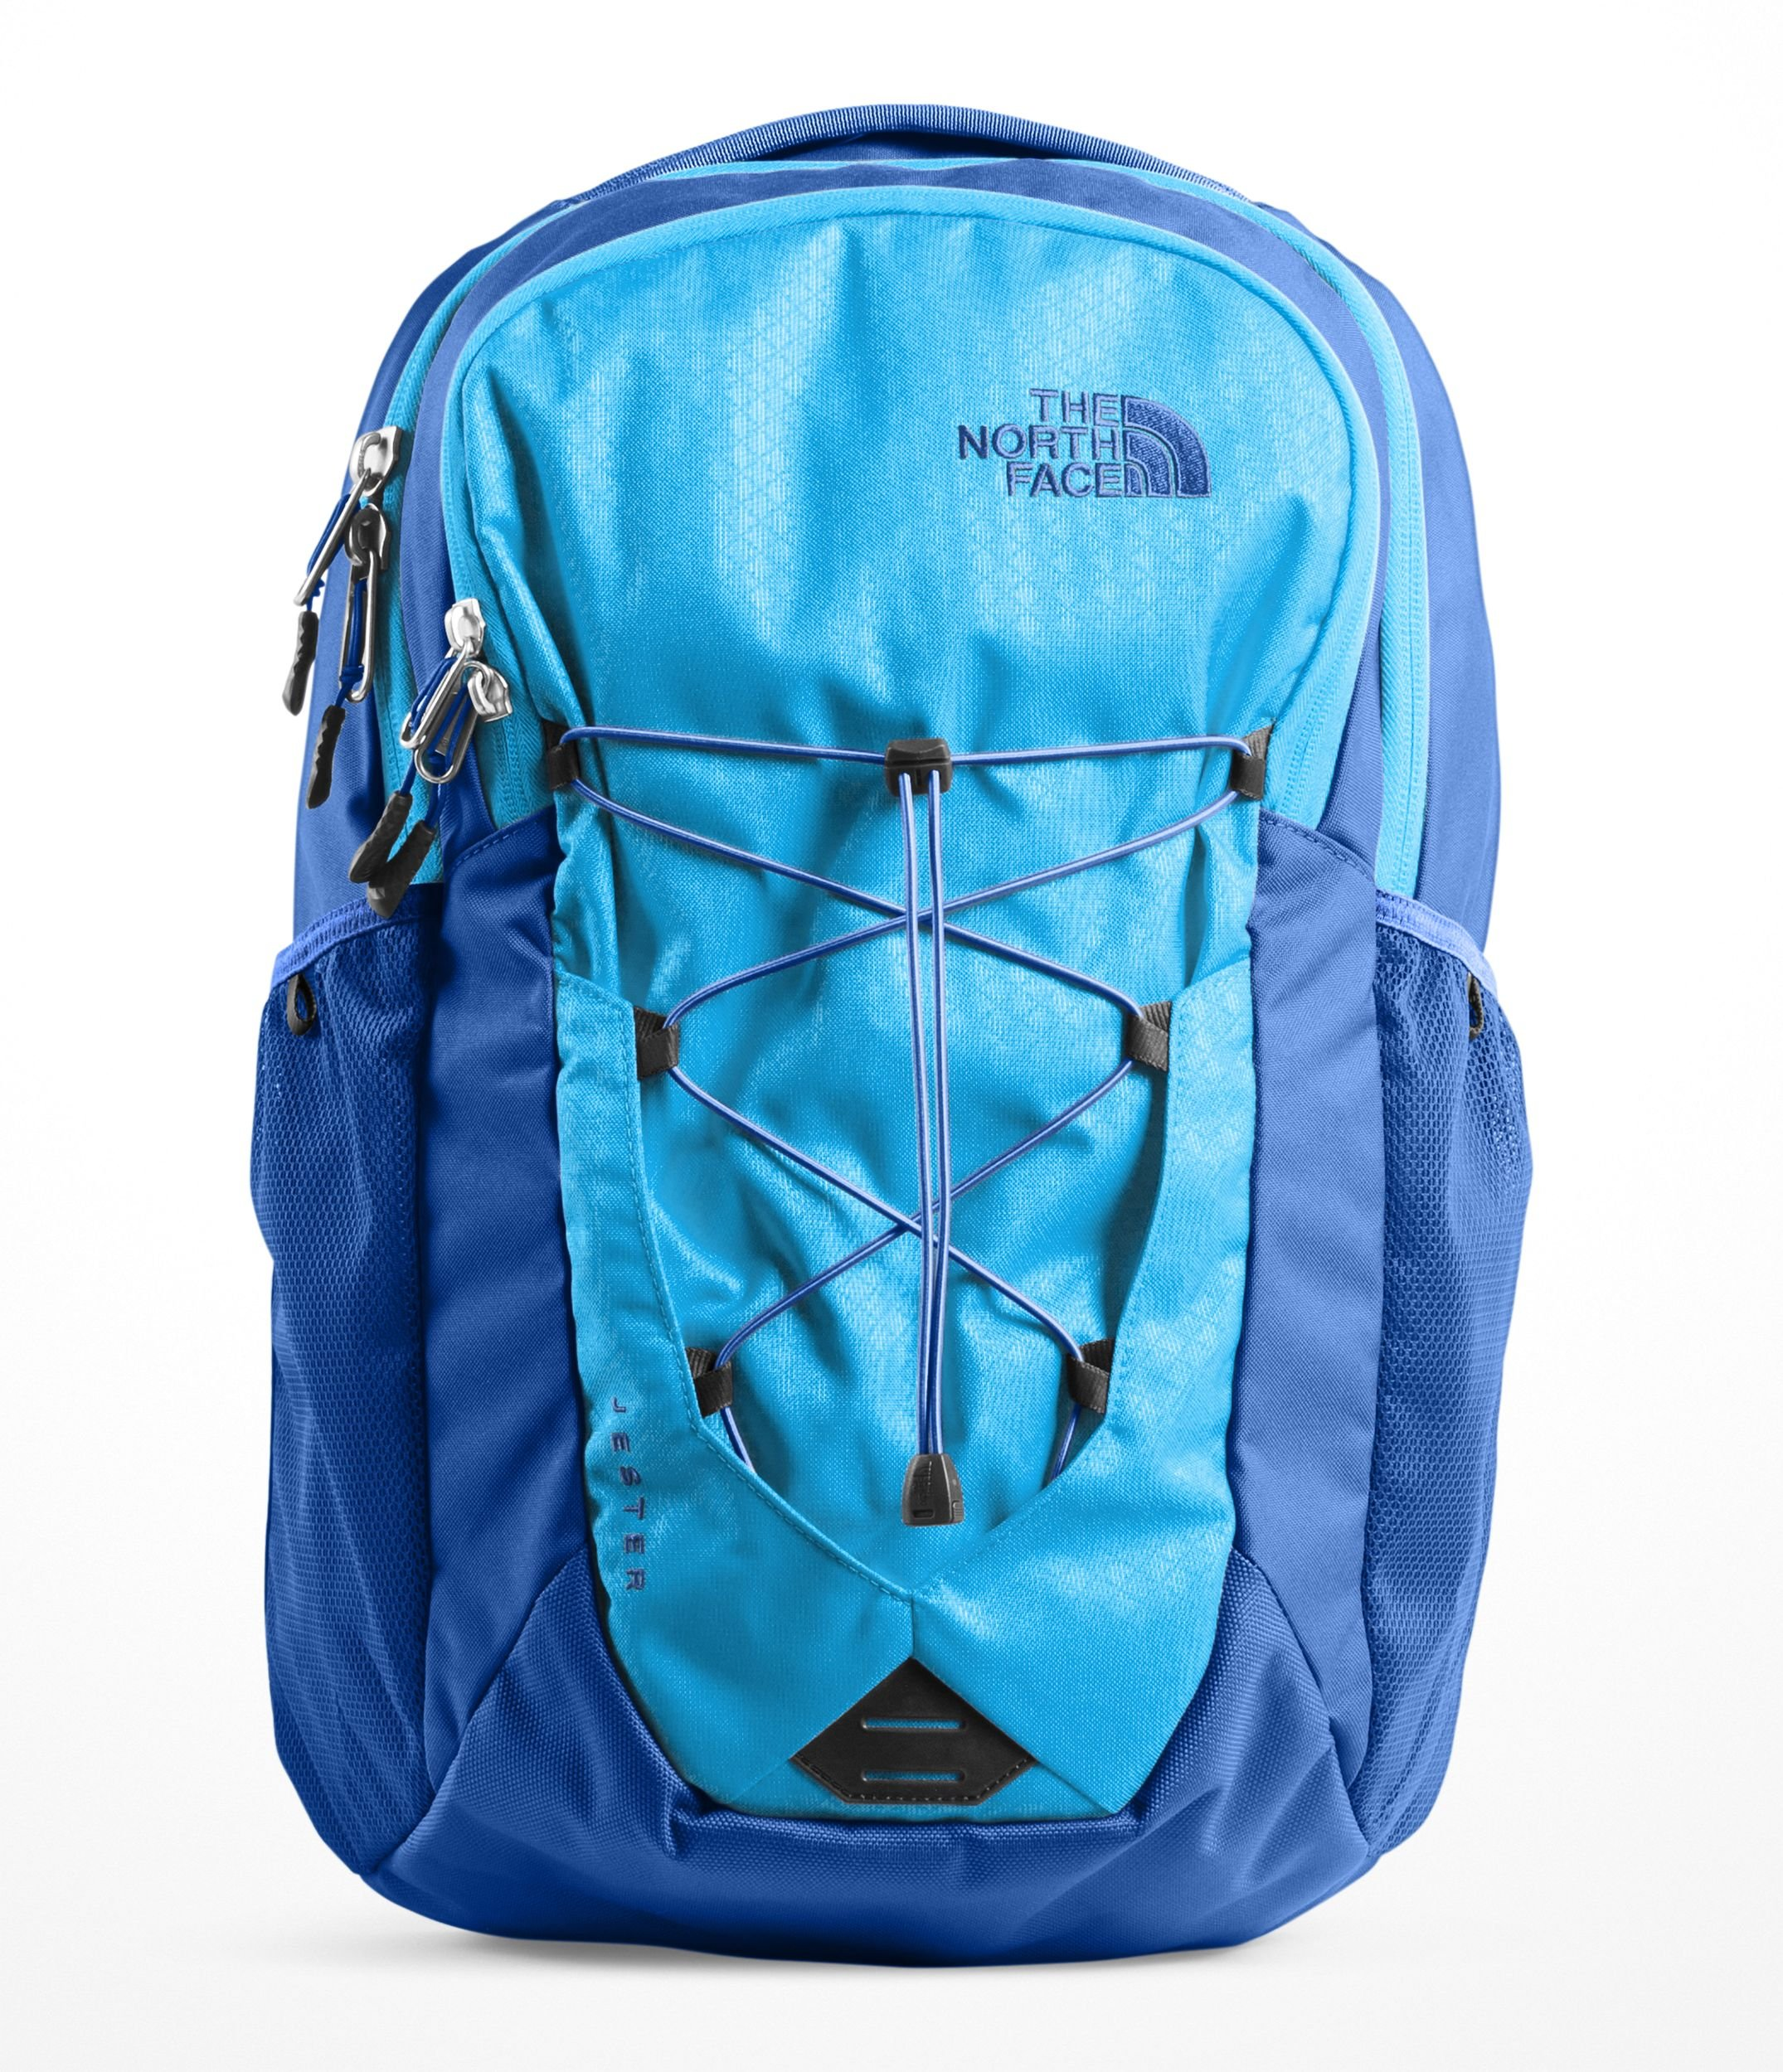 The North Face Jester - Hyper Blue & Turkish Sea - OS